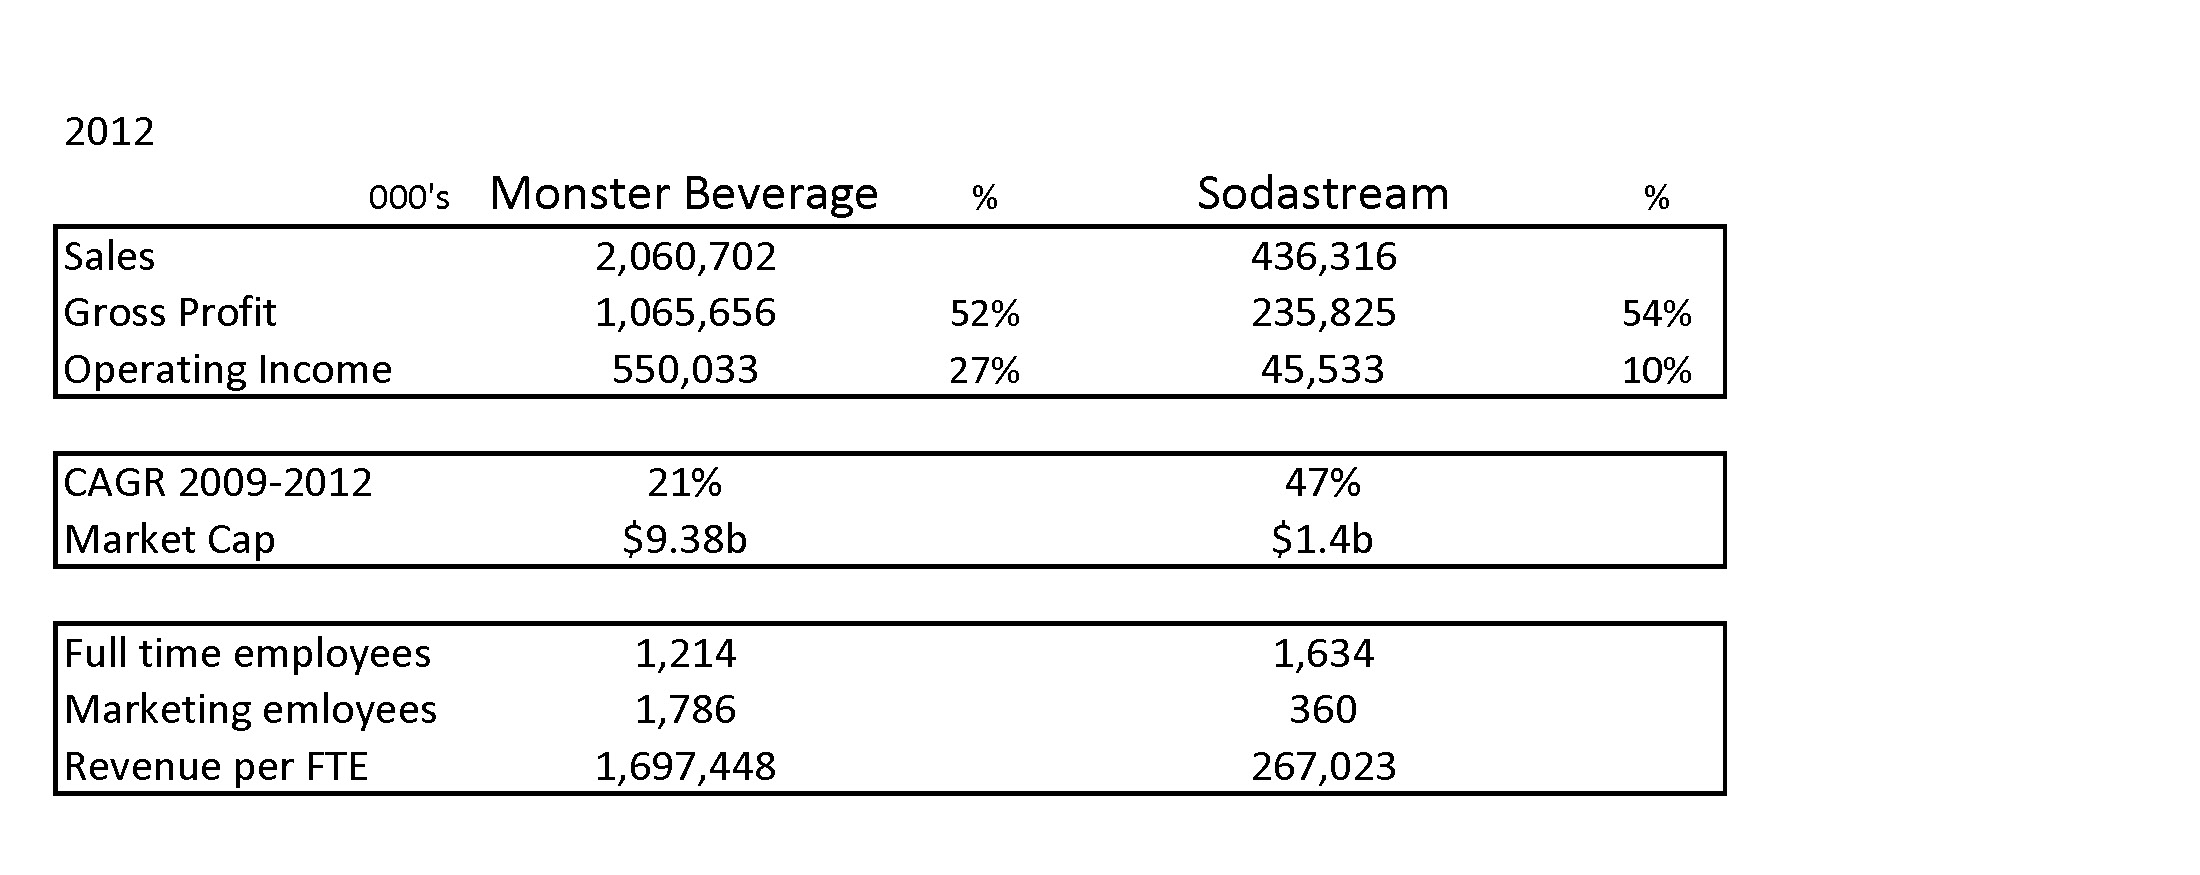 Key Financials: SodaStream and Monster Beverage